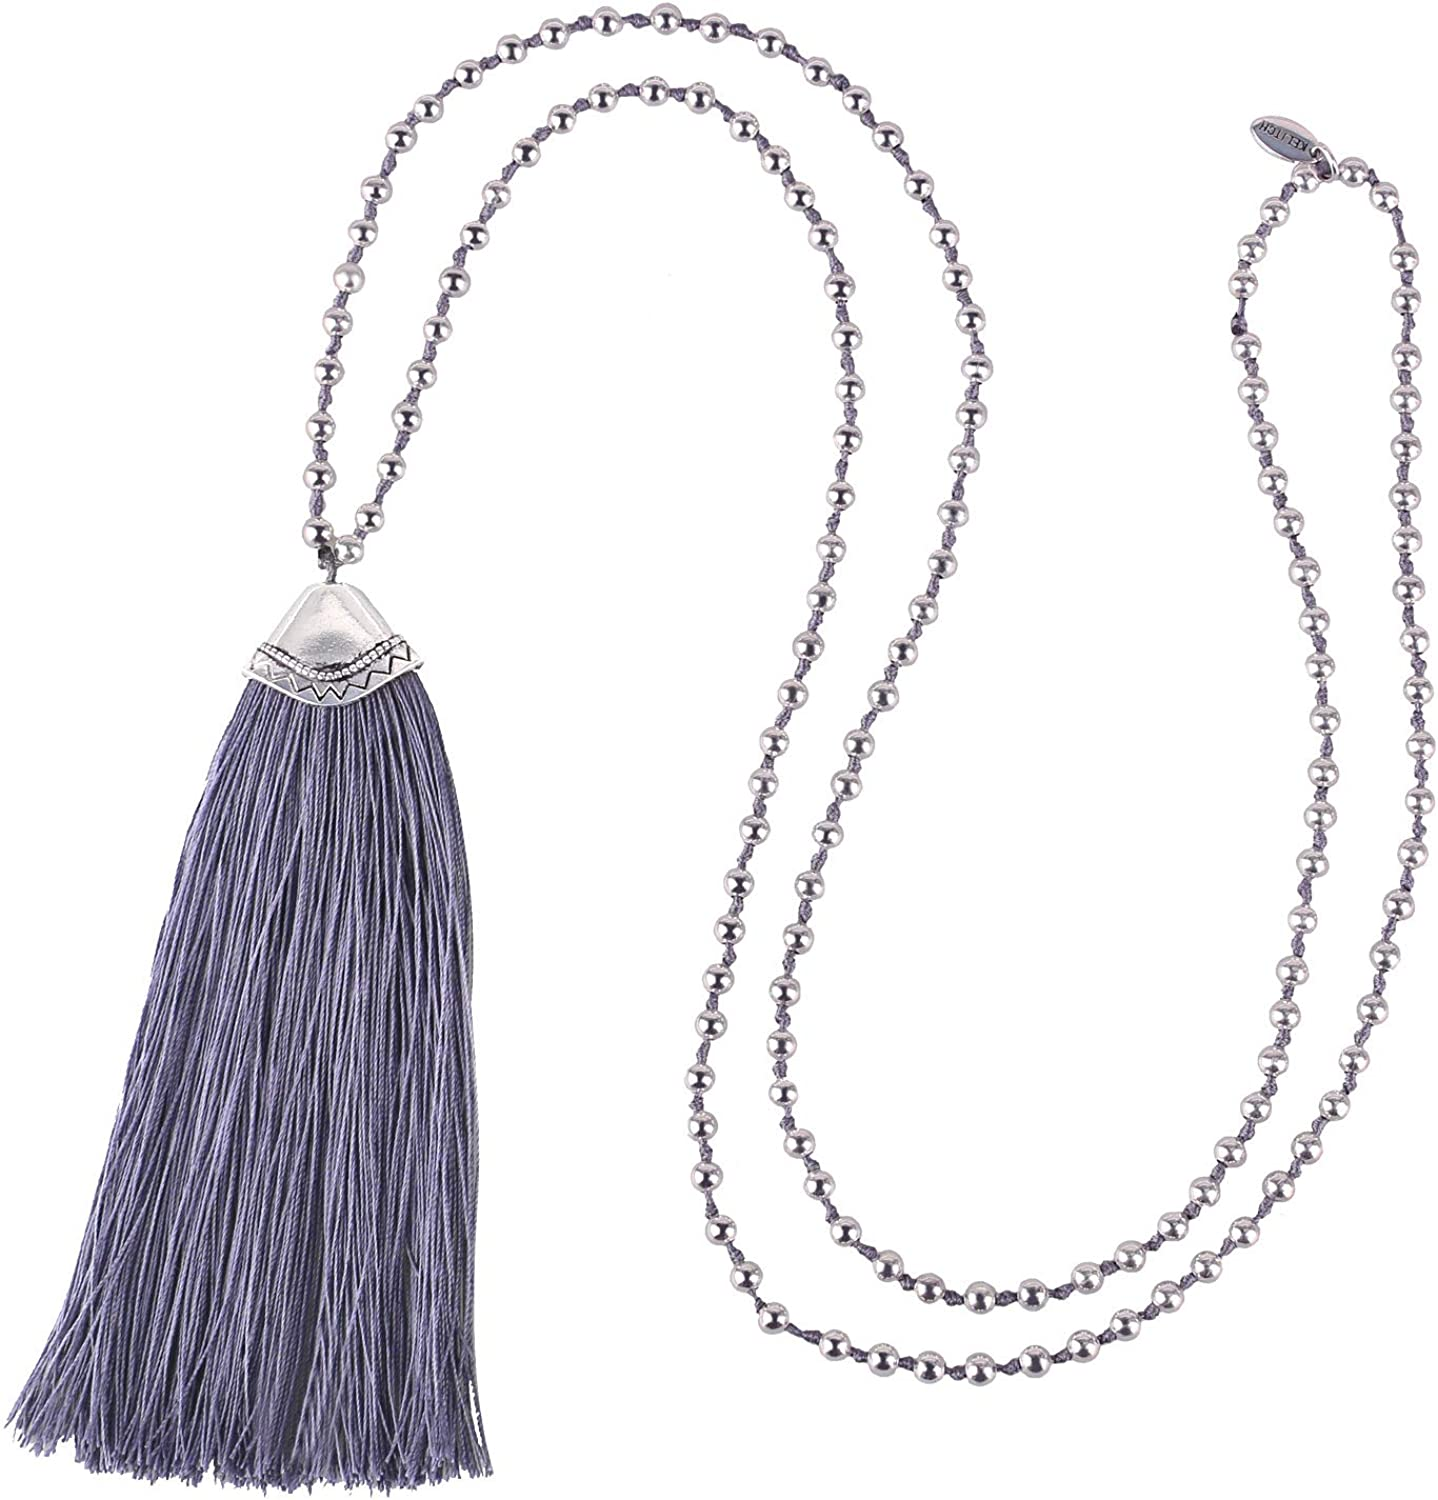 KELITCH Hand Knotted Tassel Necklace Long Layered Chain w/Silver-Plated Beads for Women